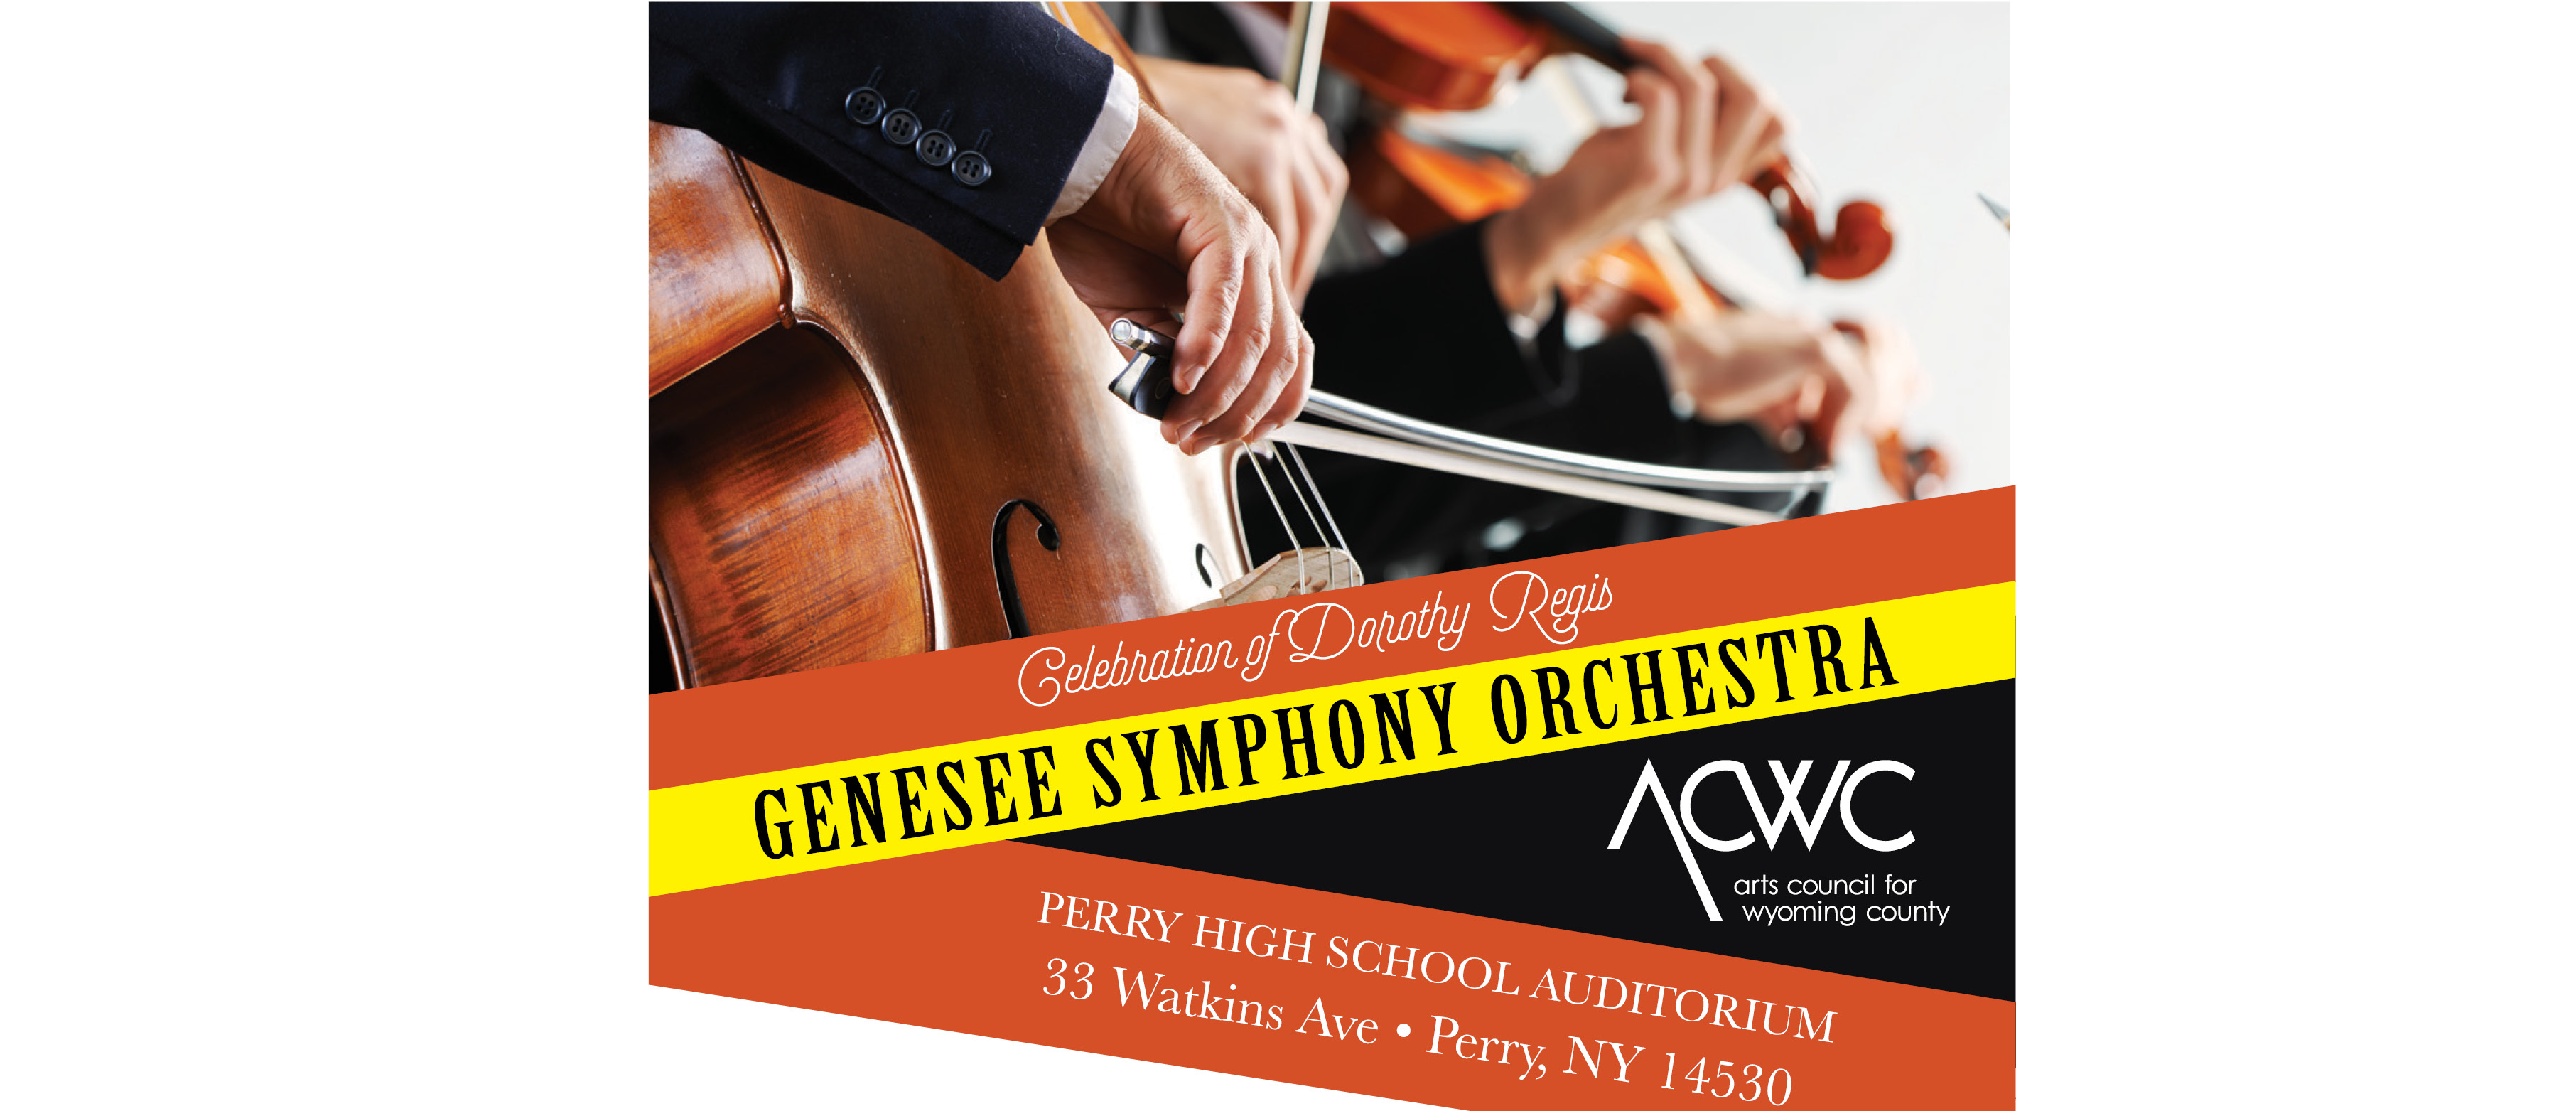 ACWC presents the Genesee Symphony Orchestra